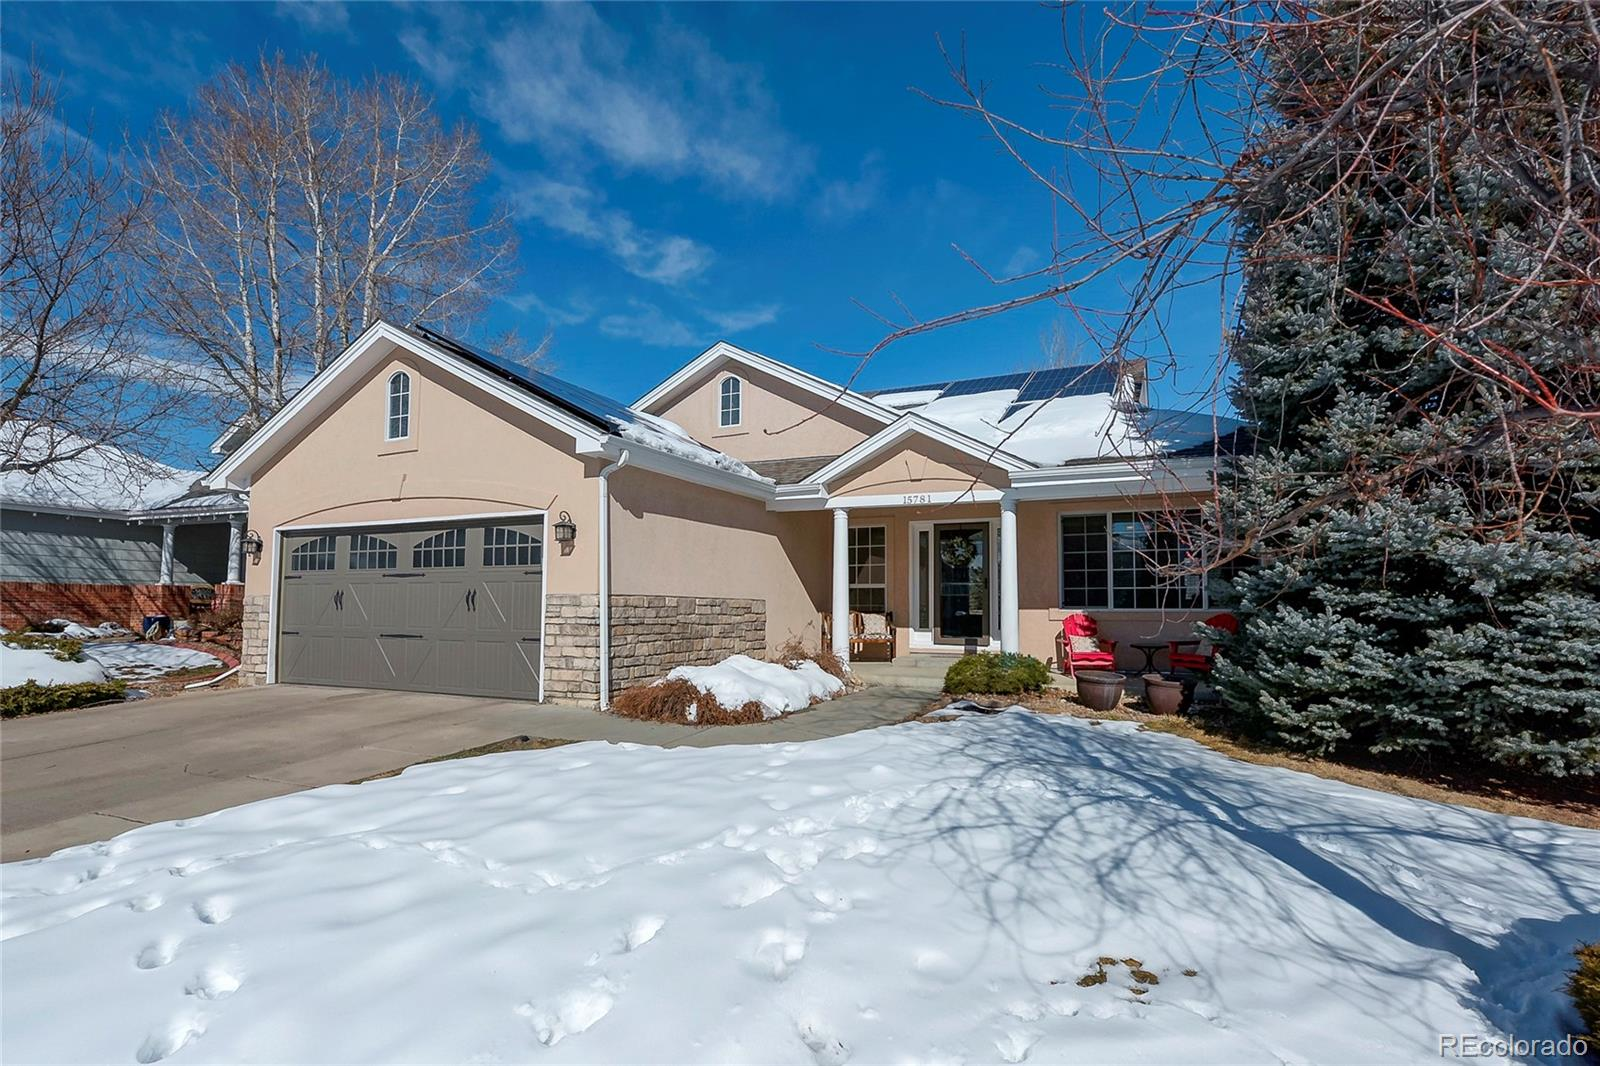 MLS# 4951528 - 32 - 15781 W 66th Place, Arvada, CO 80007